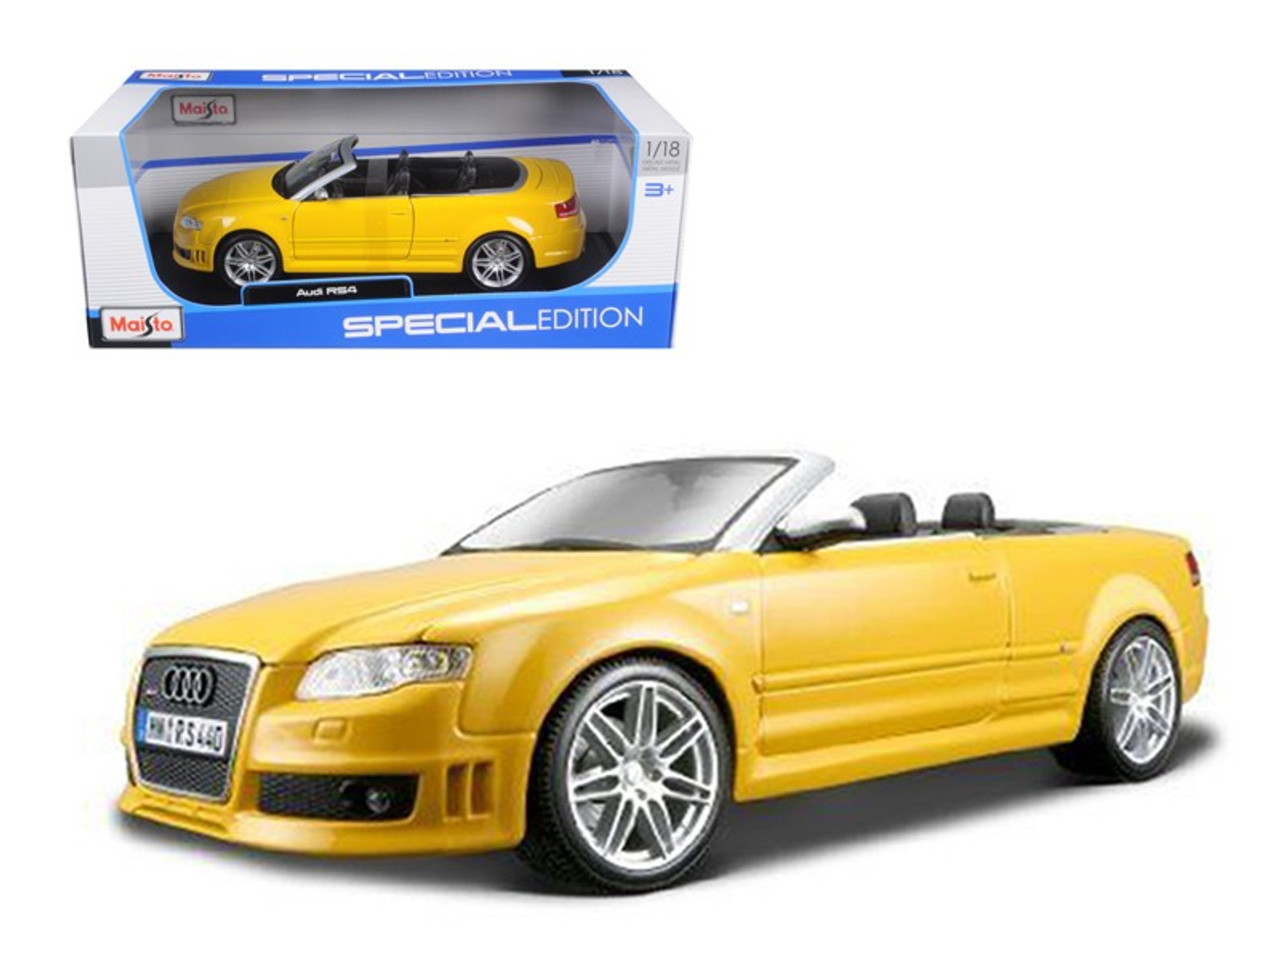 2008 Audi Rs4 Convertible Yellow 1 18 Diecast Model Car By Maisto 31147y